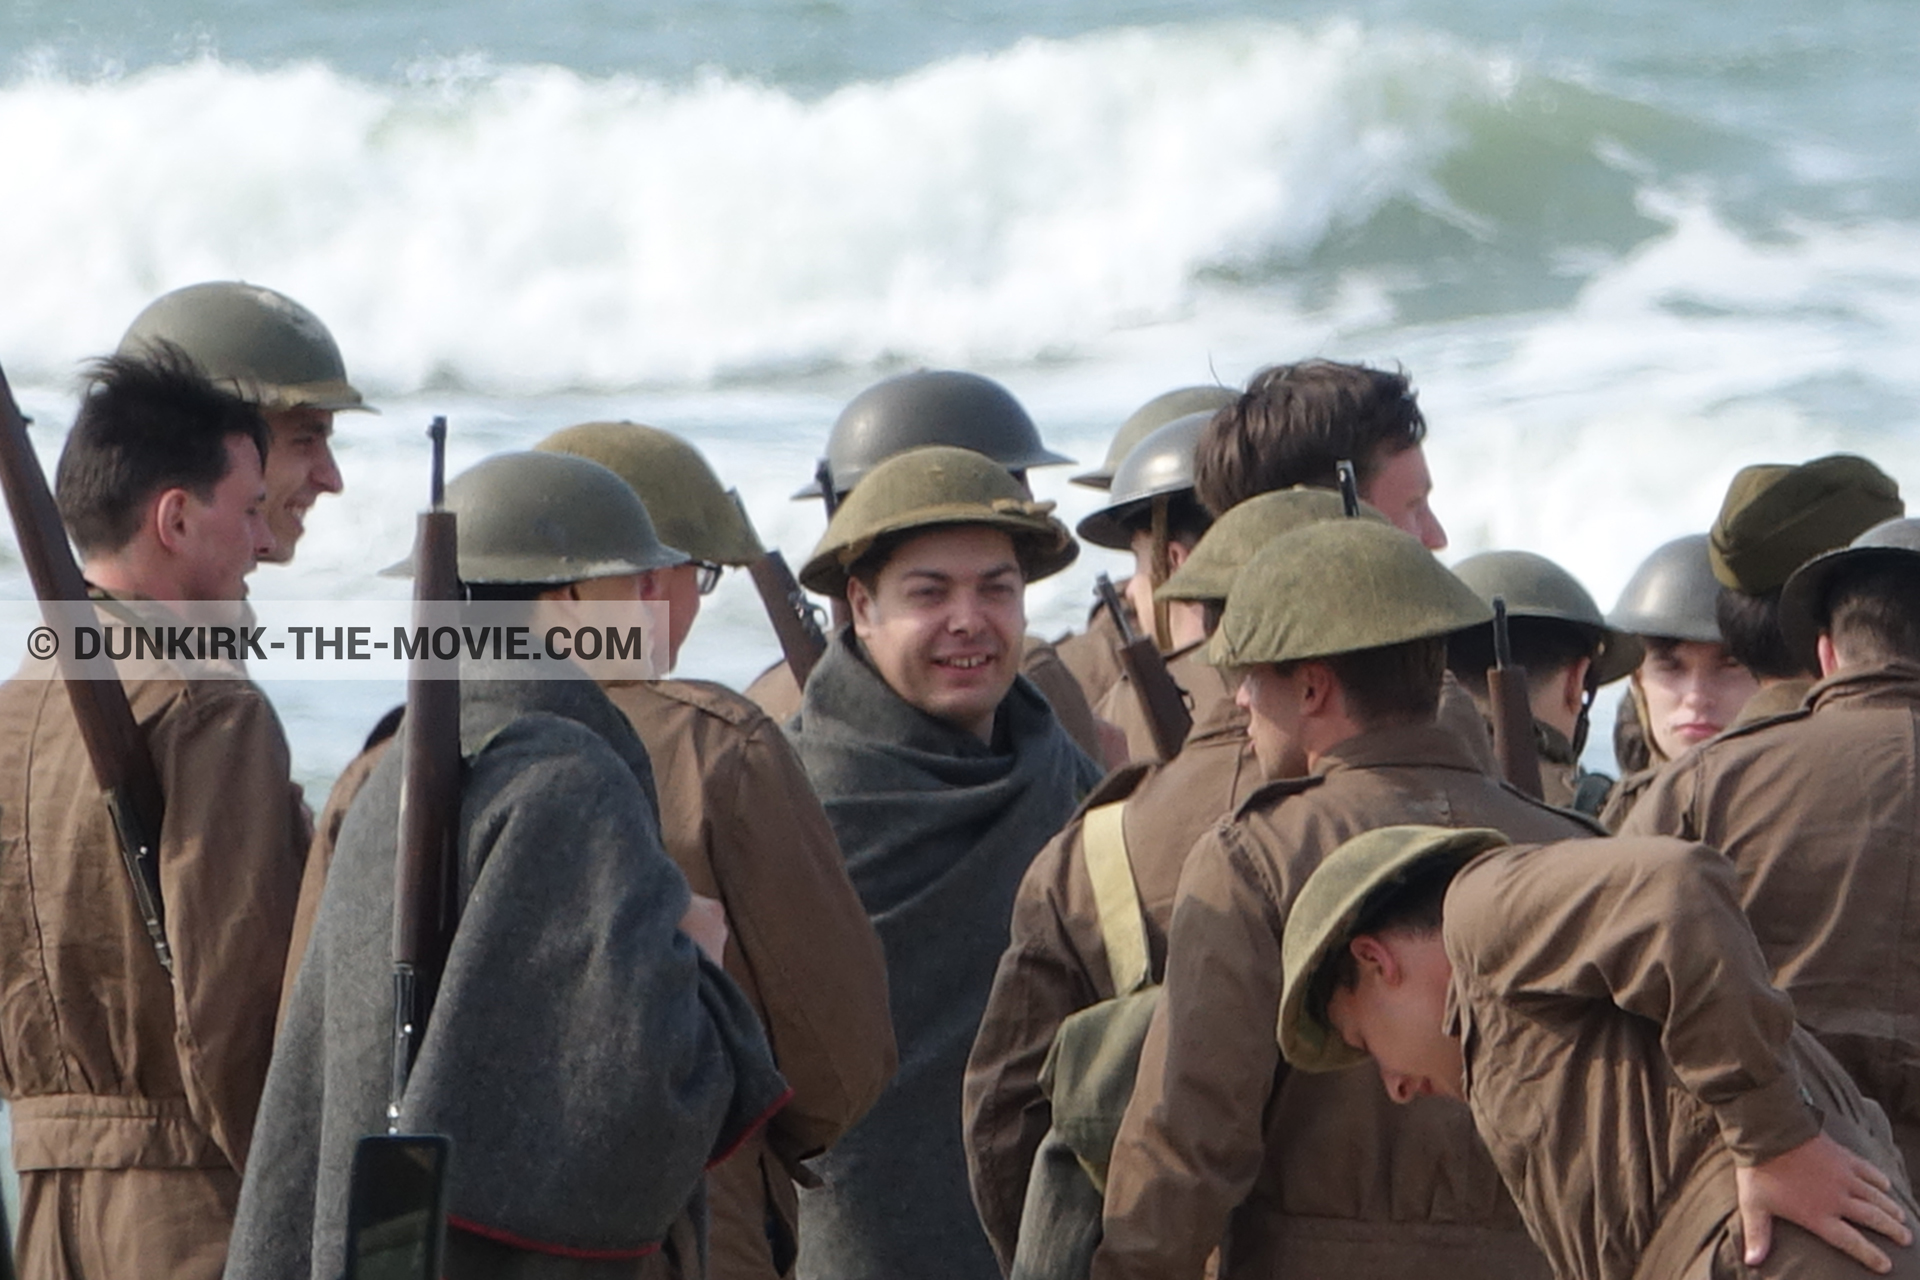 Picture with supernumeraries, rough sea,  from behind the scene of the Dunkirk movie by Nolan